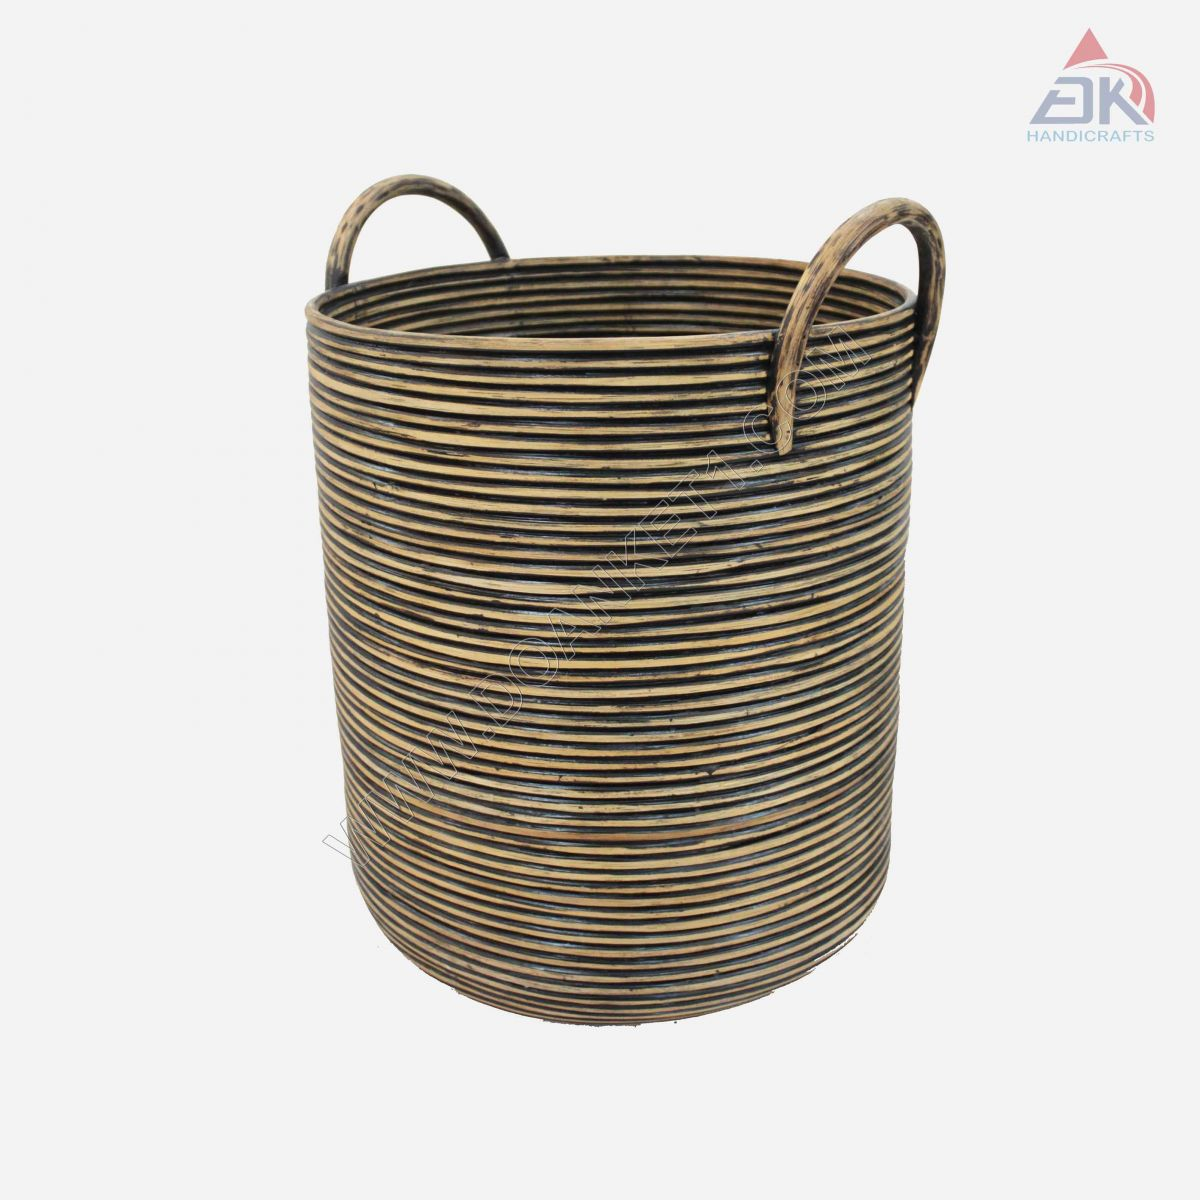 Tall Coiled Basket # DK45